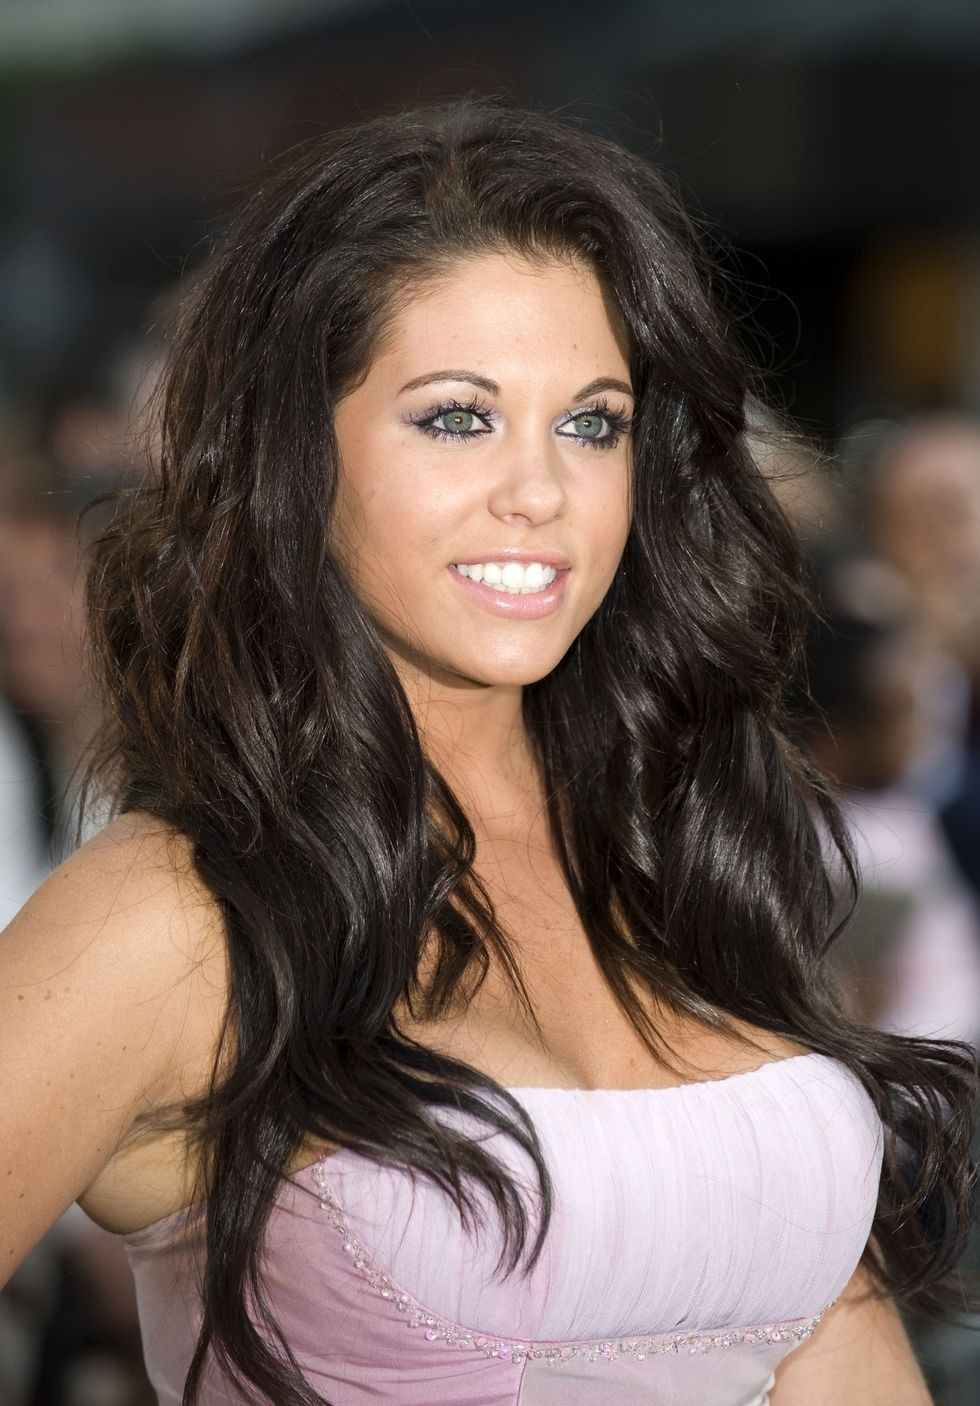 Bianca Gascoigne Iphone Background